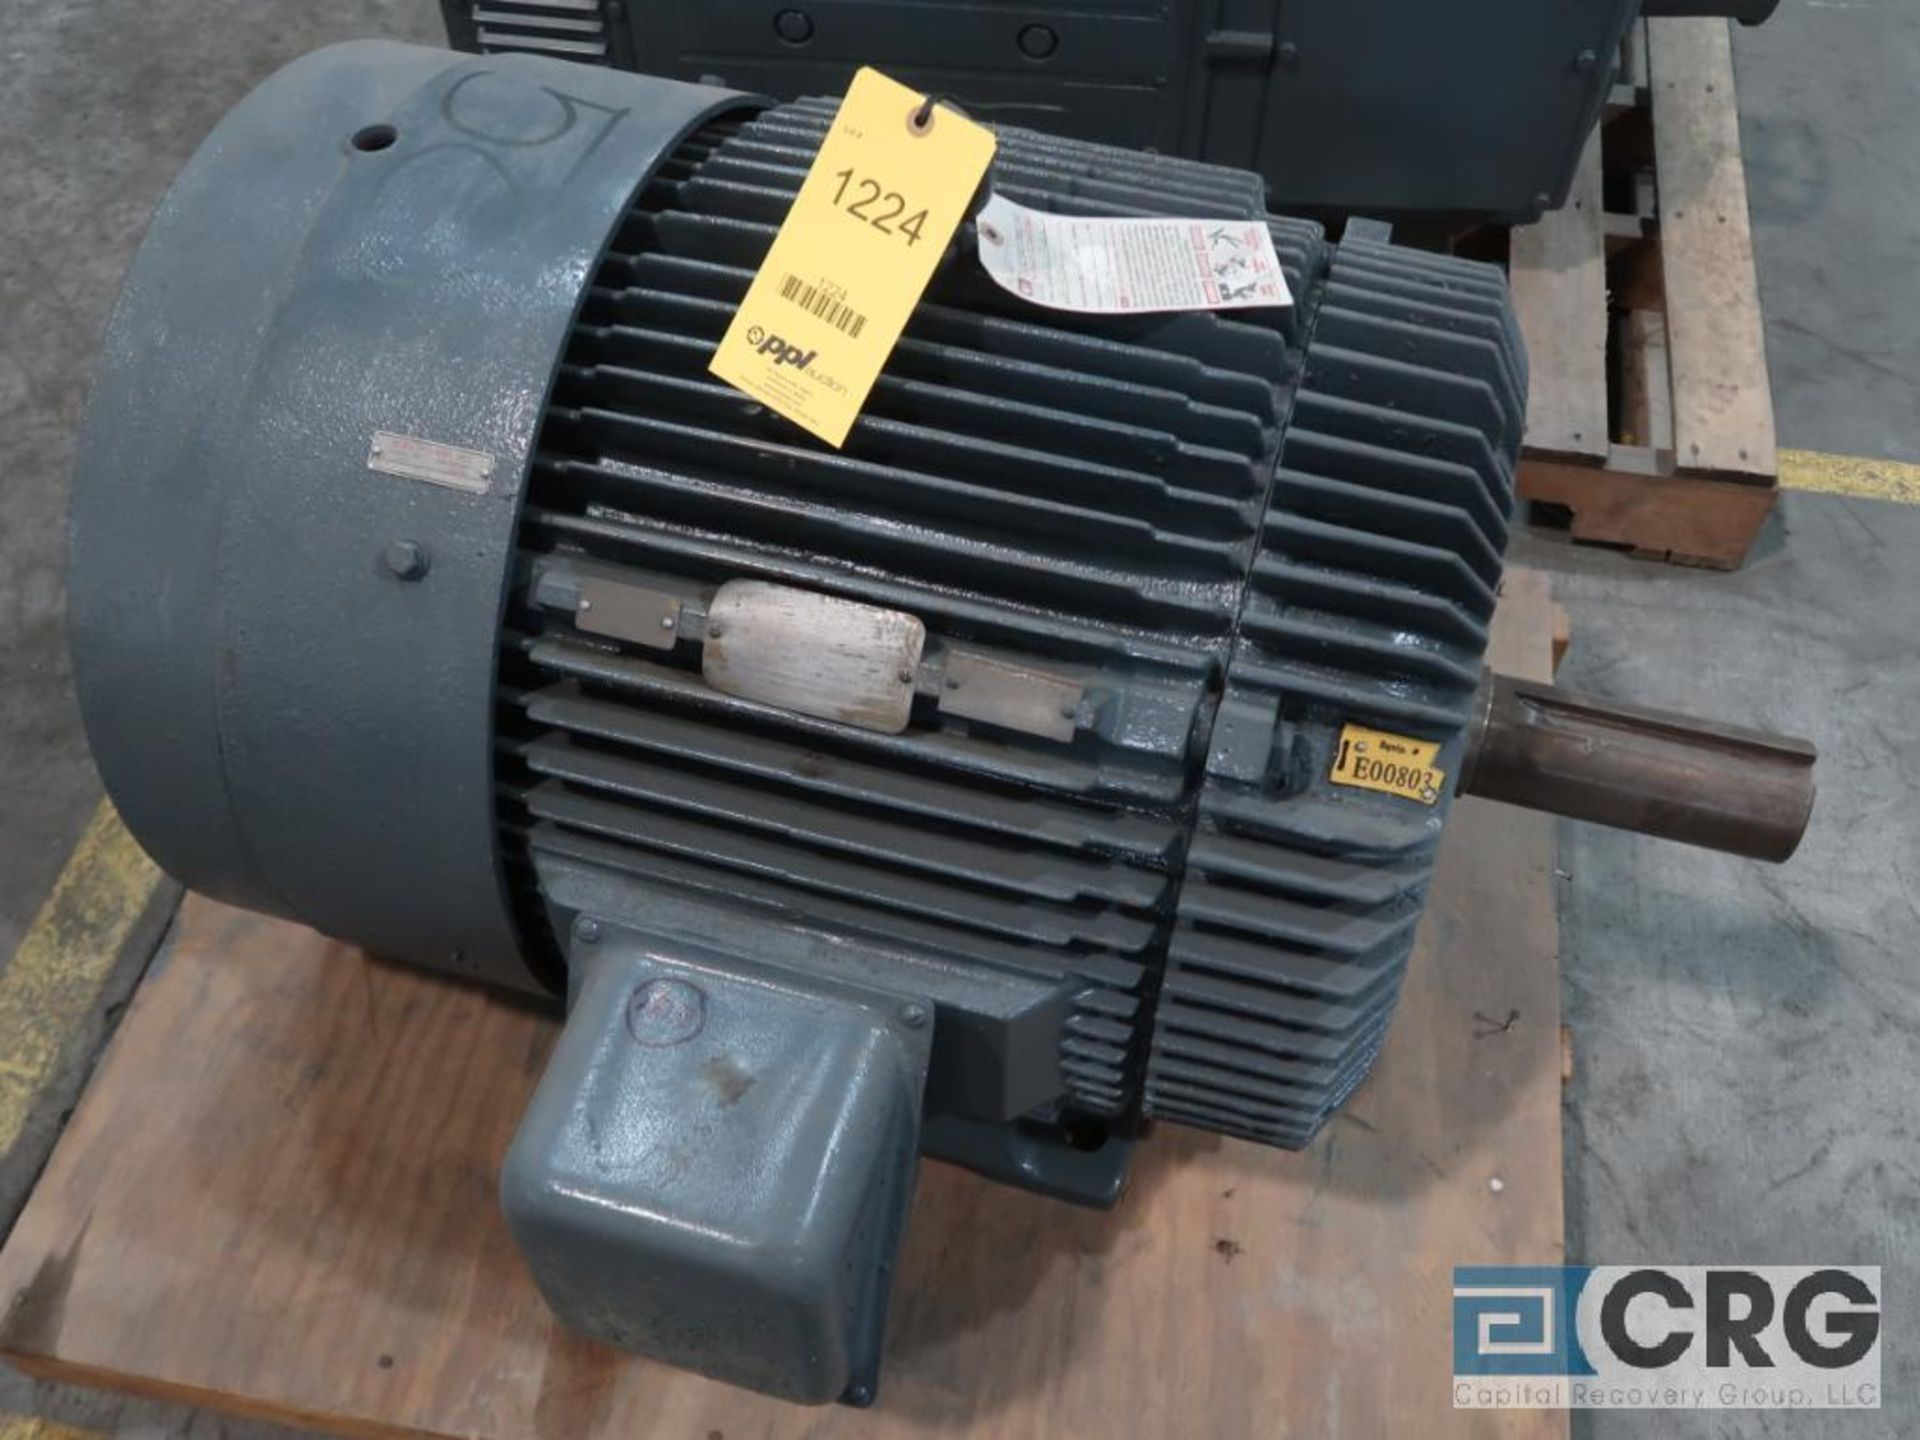 Reliance Duty Master A-C motor, 50 HP, 875 RPMs, 460 volt, 3 ph., 404T frame (Finish Building)